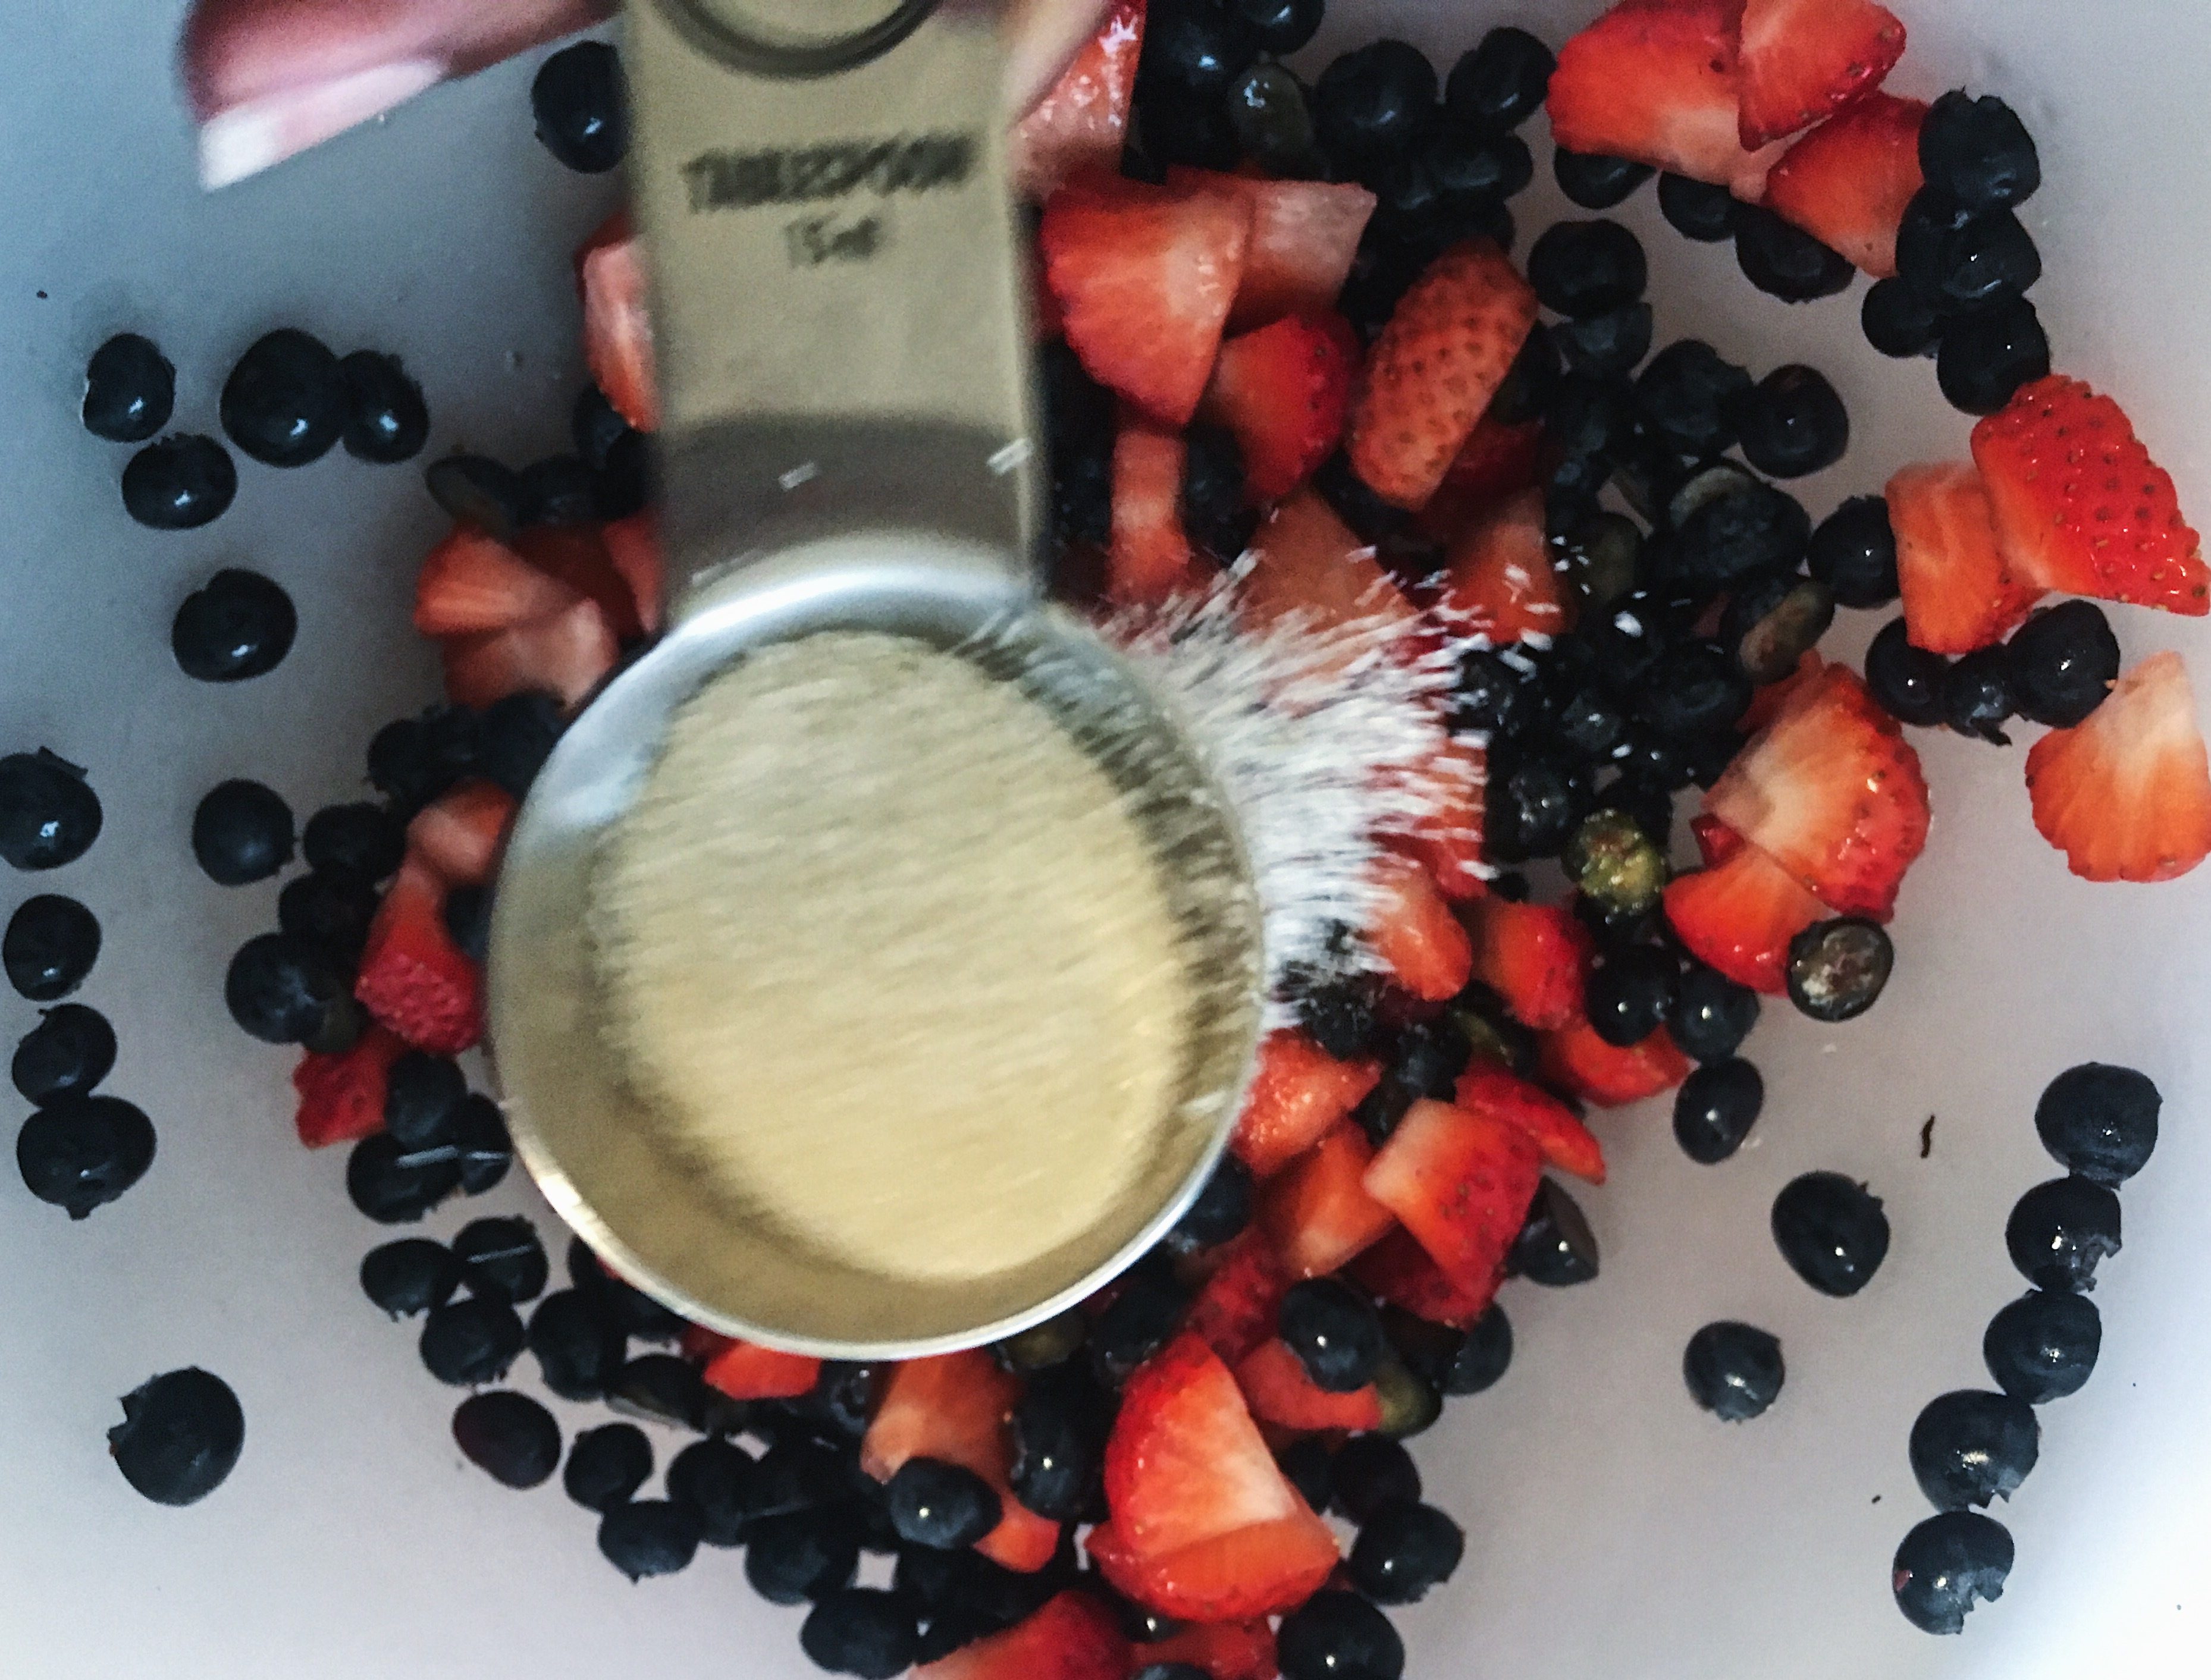 add 1 tablespoon of sugar to berries to make a berry syrup